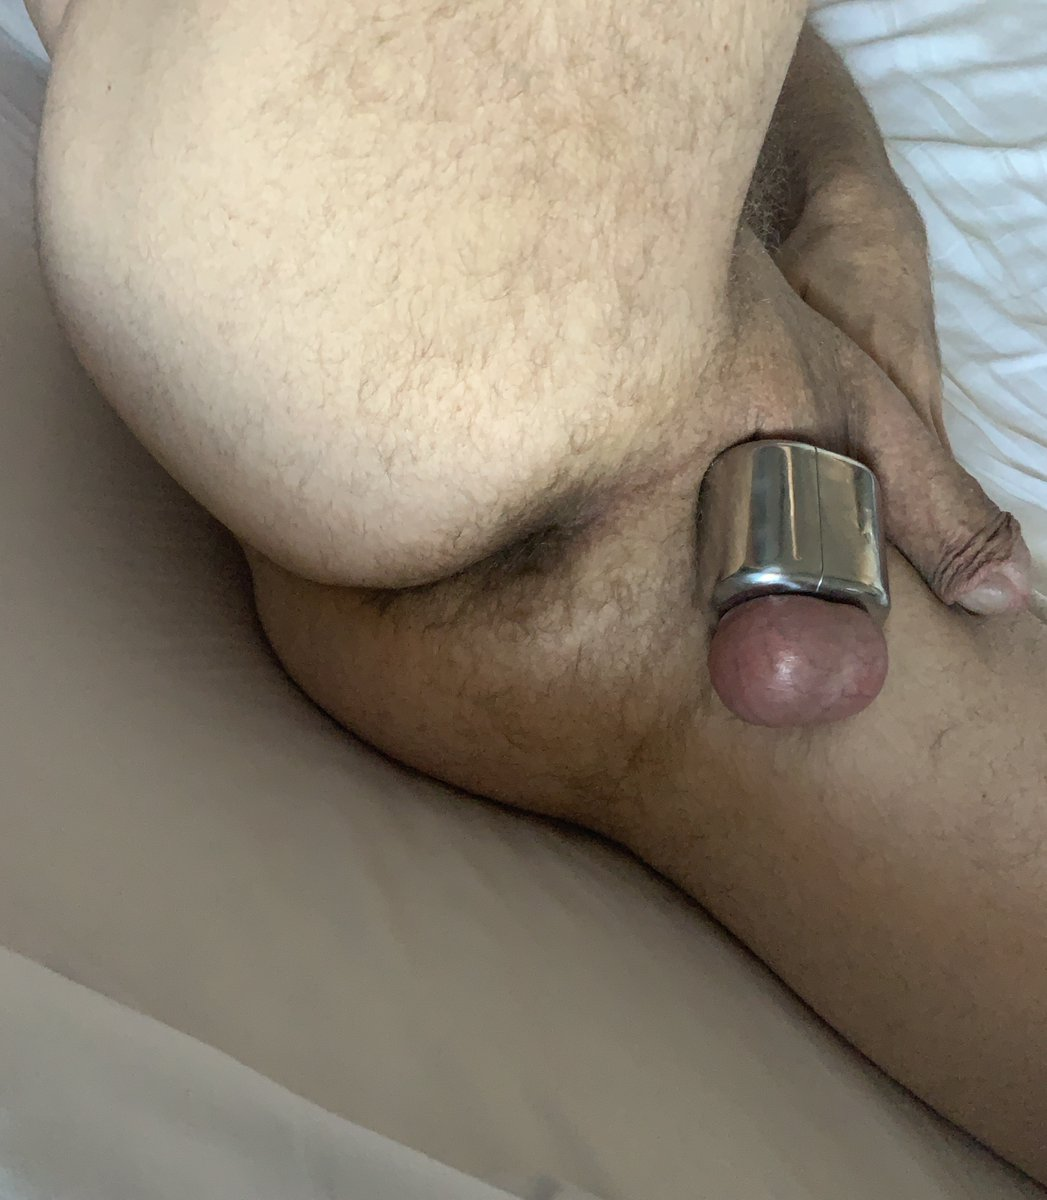 In major need of some Asian or Latino cock to worship with my mouth, plow my hole breeding me, and marking me as their's with their piss. Crazy-horny for average to smaller cocks.  #ballweight #ballstretcher